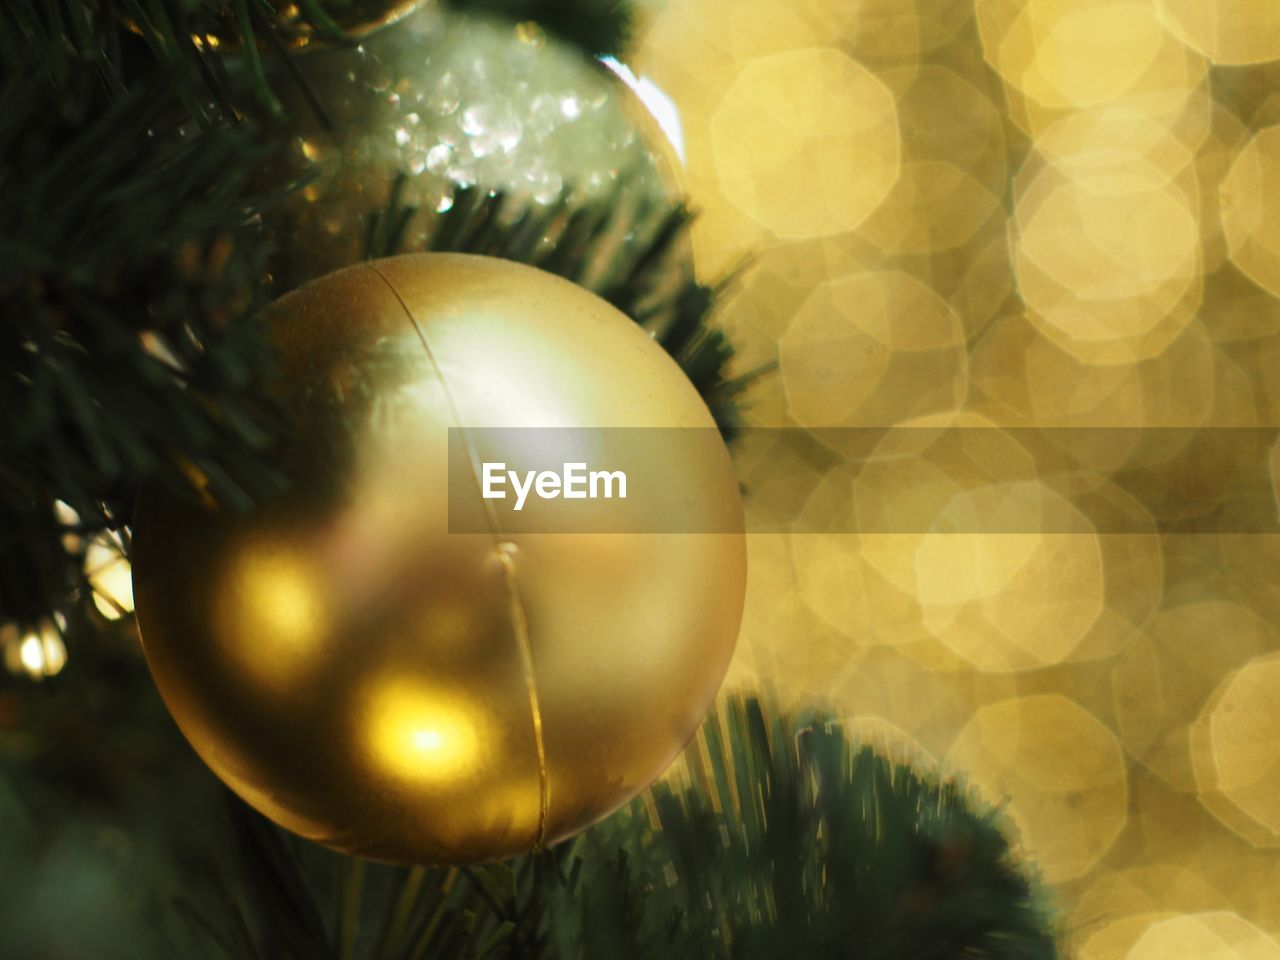 christmas, celebration, decoration, christmas decoration, holiday, christmas ornament, close-up, sphere, no people, shiny, tree, gold colored, christmas tree, shape, holiday - event, selective focus, celebration event, focus on foreground, still life, lens flare, silver colored